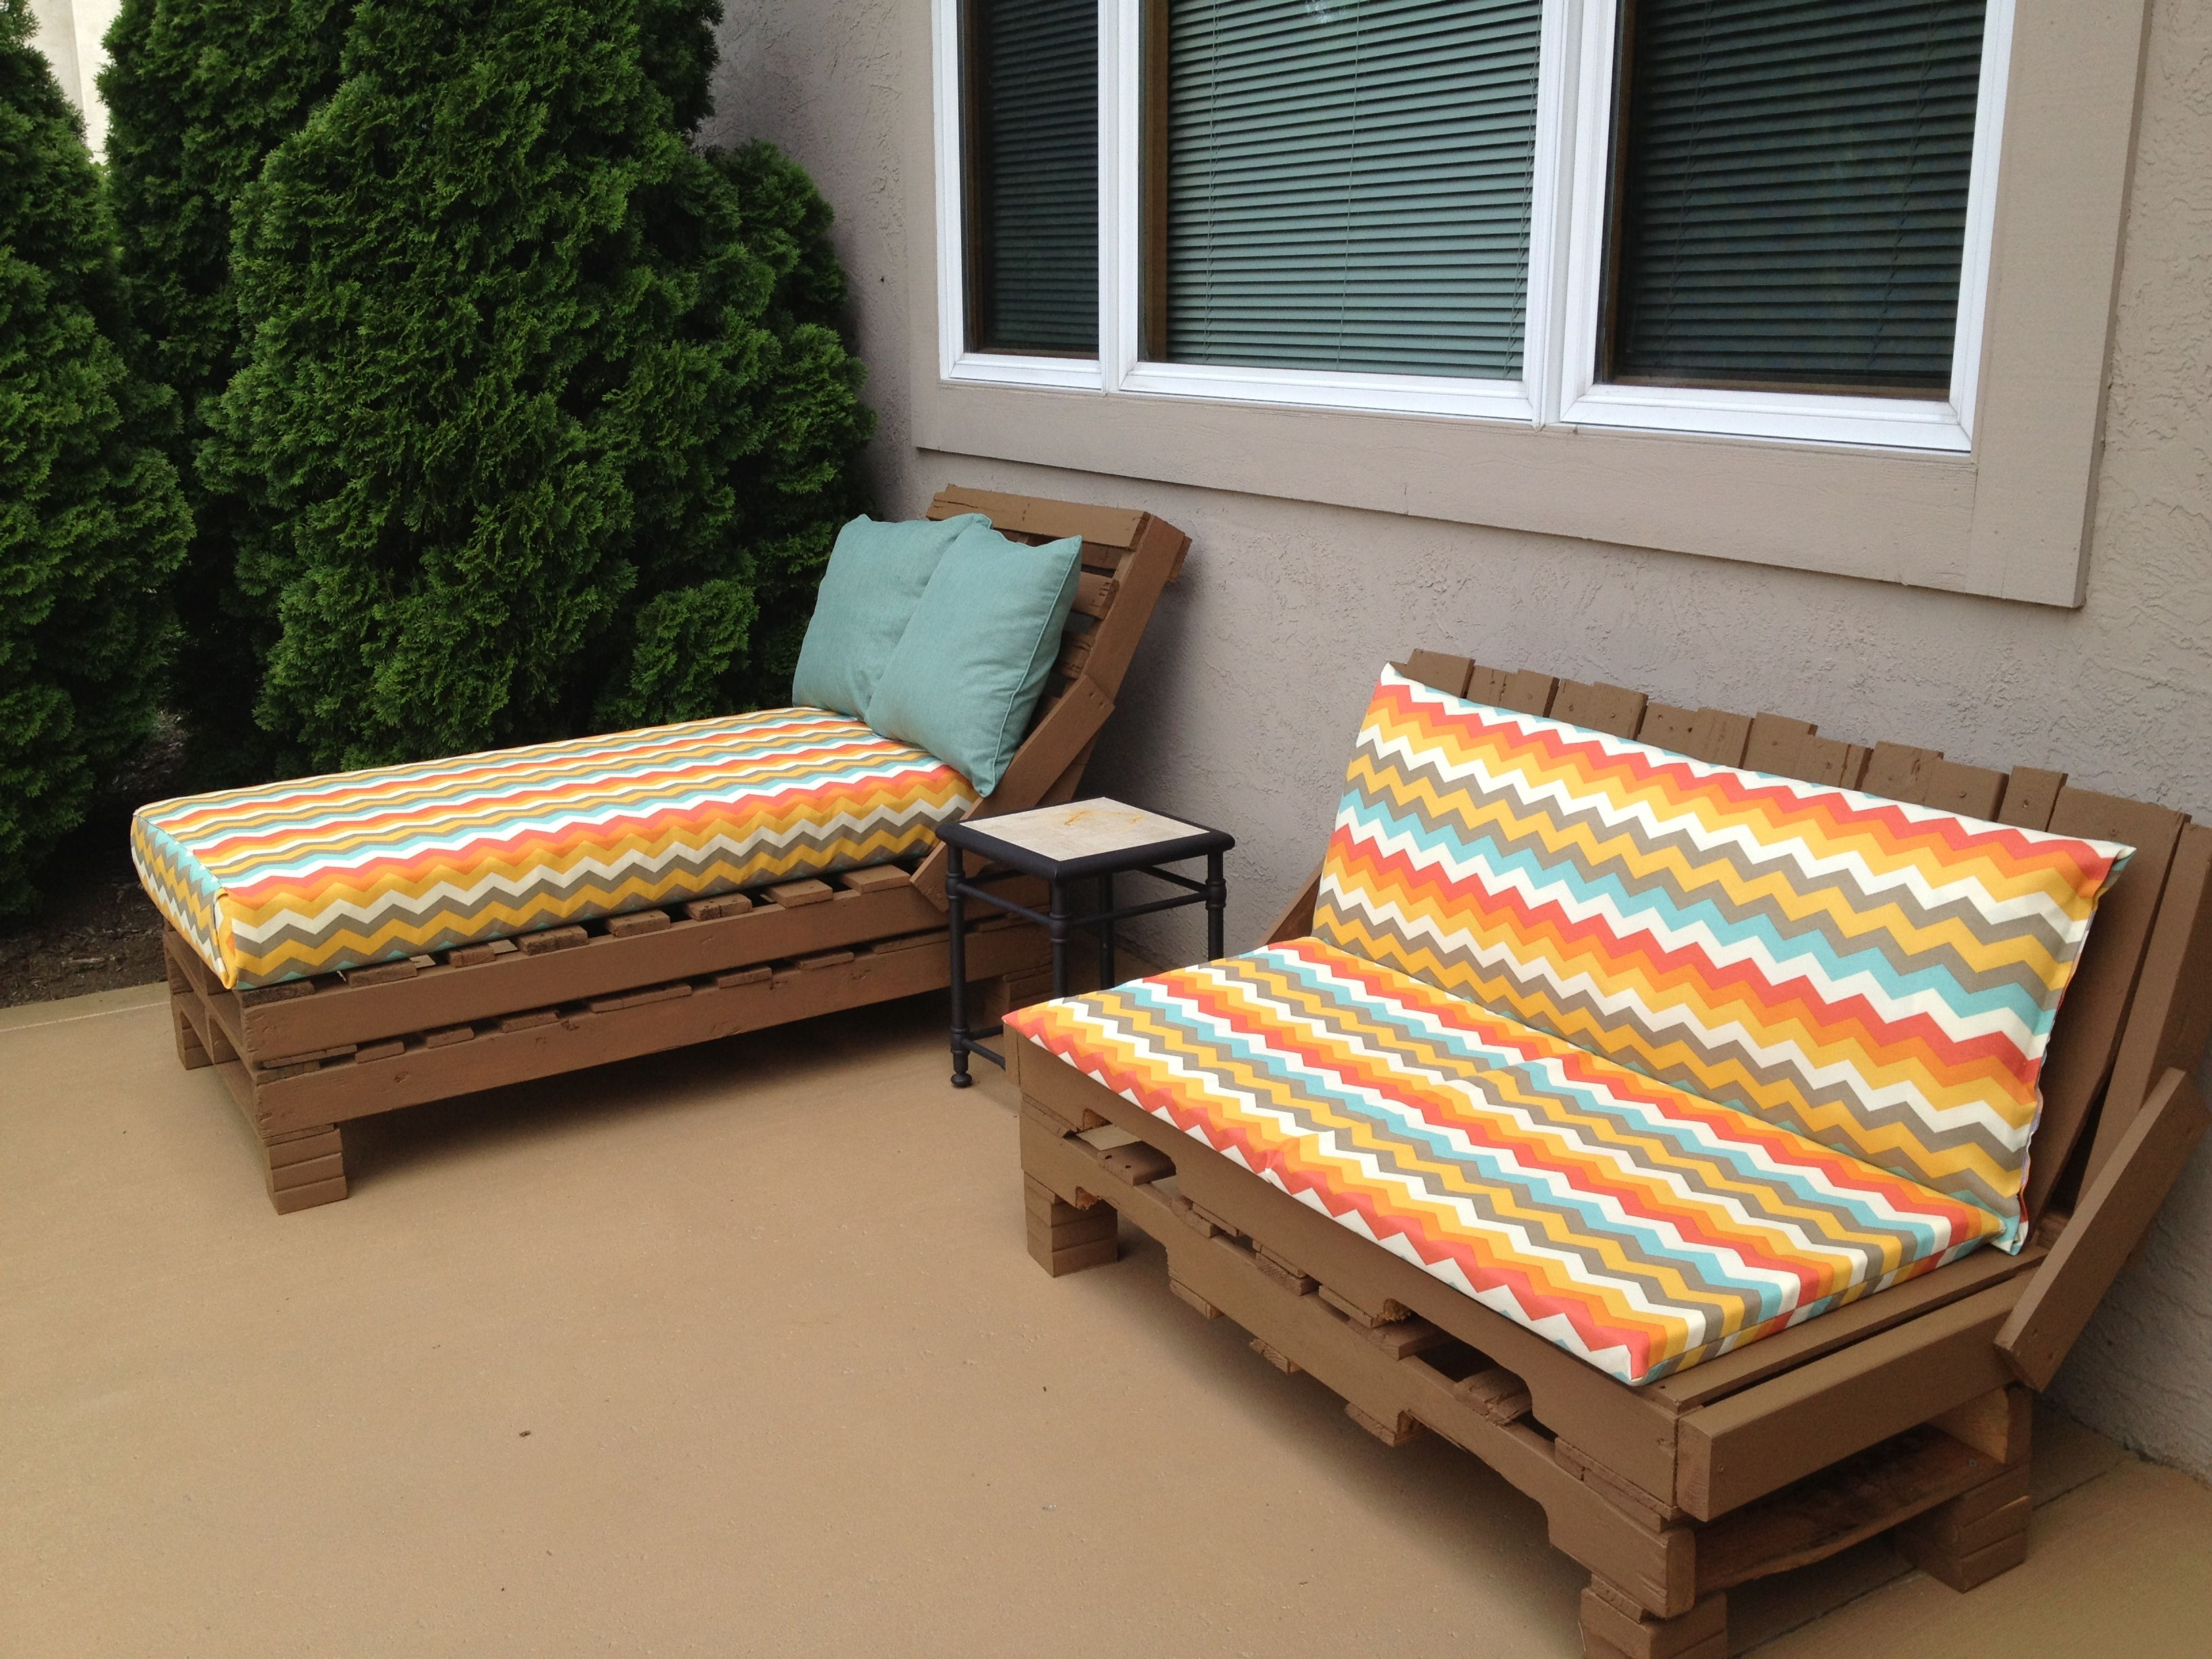 Pallet Furniture Pictures Pallet Patio Furniture So Easy Stack Pallets Nail Together